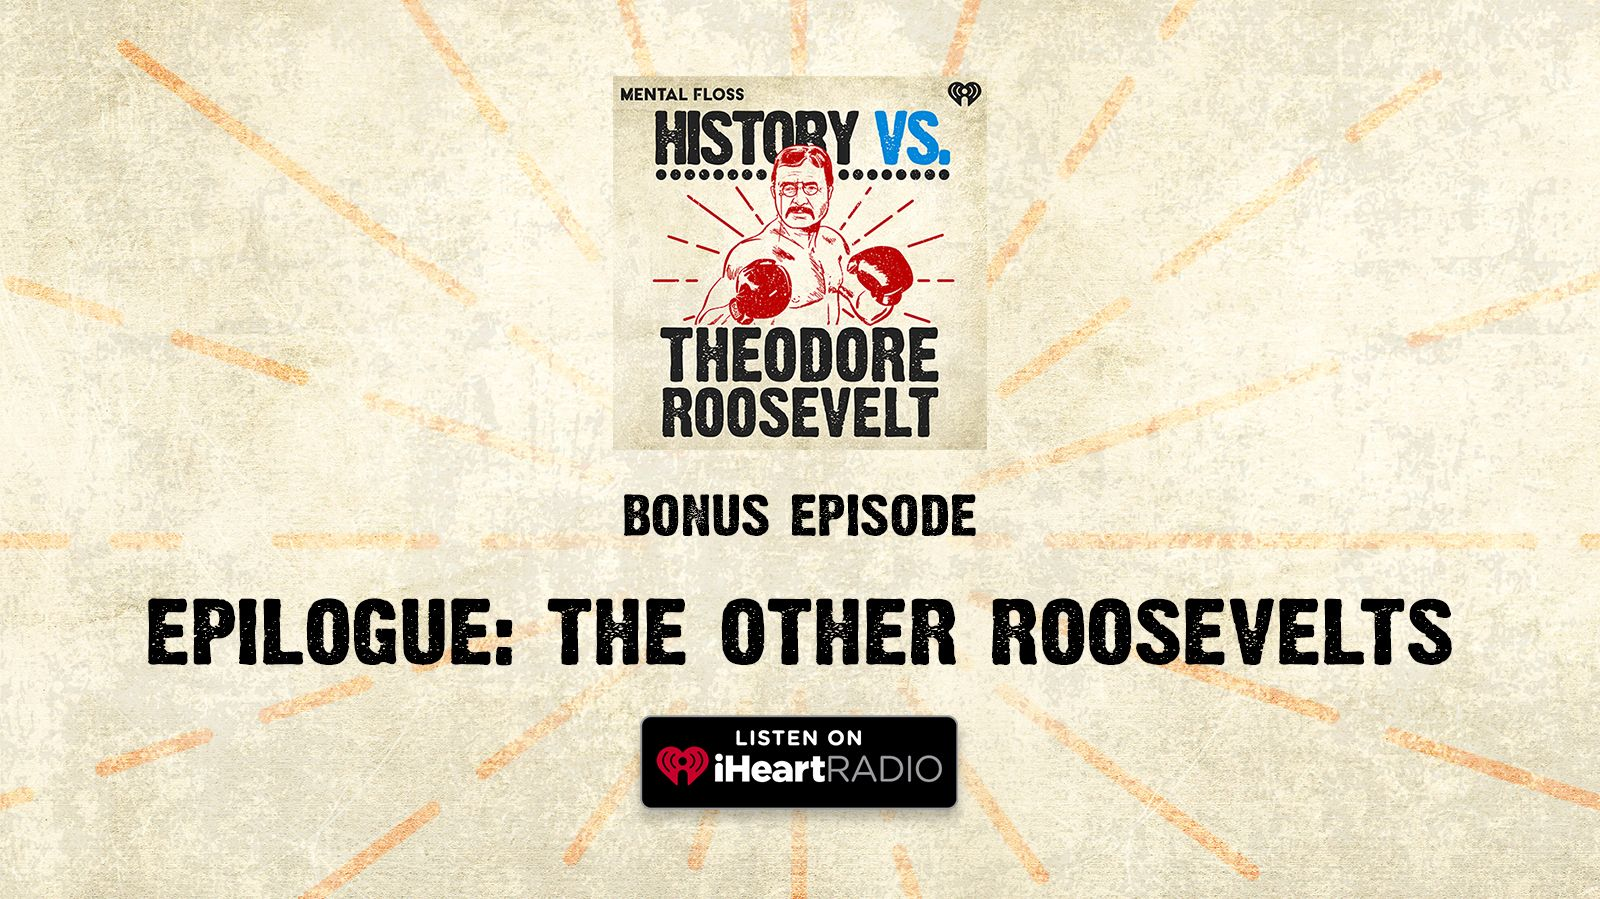 History Vs. Podcast: Epilogue - The Other Roosevelts